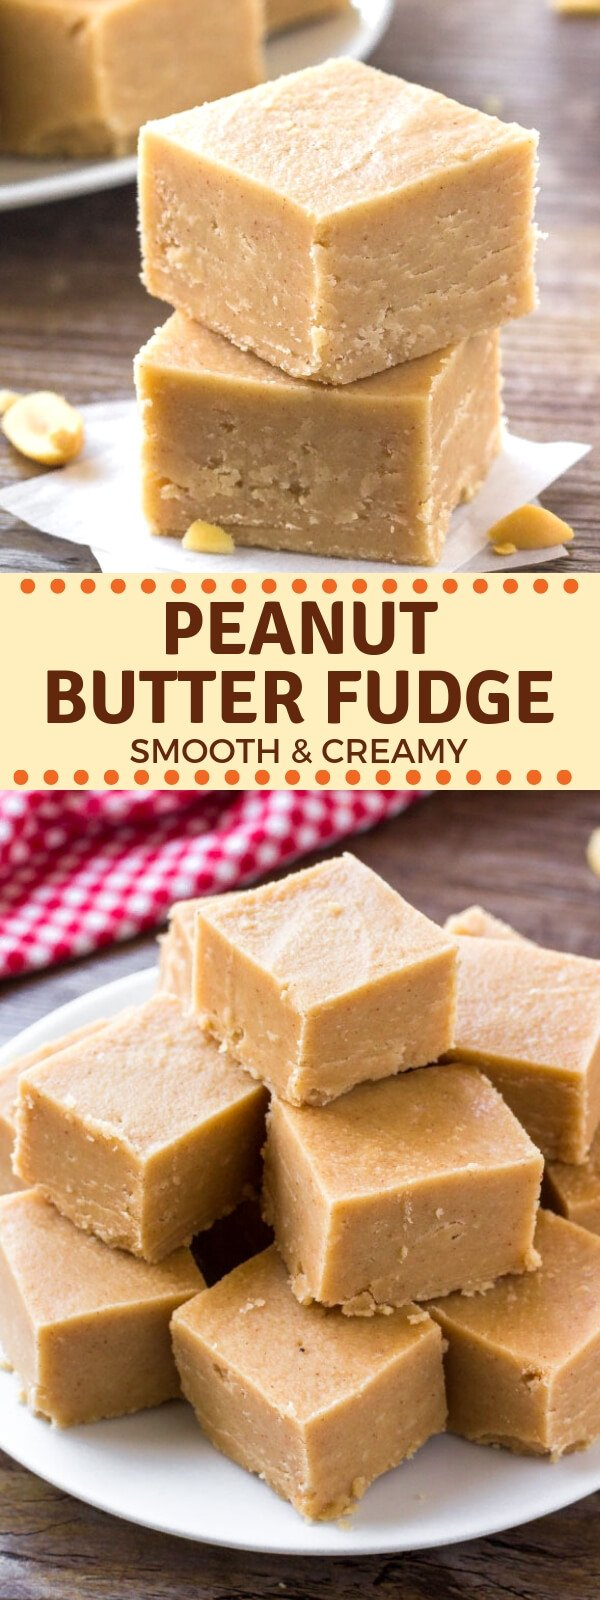 Smooth & creamy peanut butter fudge that melts in your mouth. Ready in minutes, 5 ingredients and no candy thermometer required - add this easy recipe to your holiday baking list! #fudge #peanutbutter #holidays #christmas #easy #homemade #candy